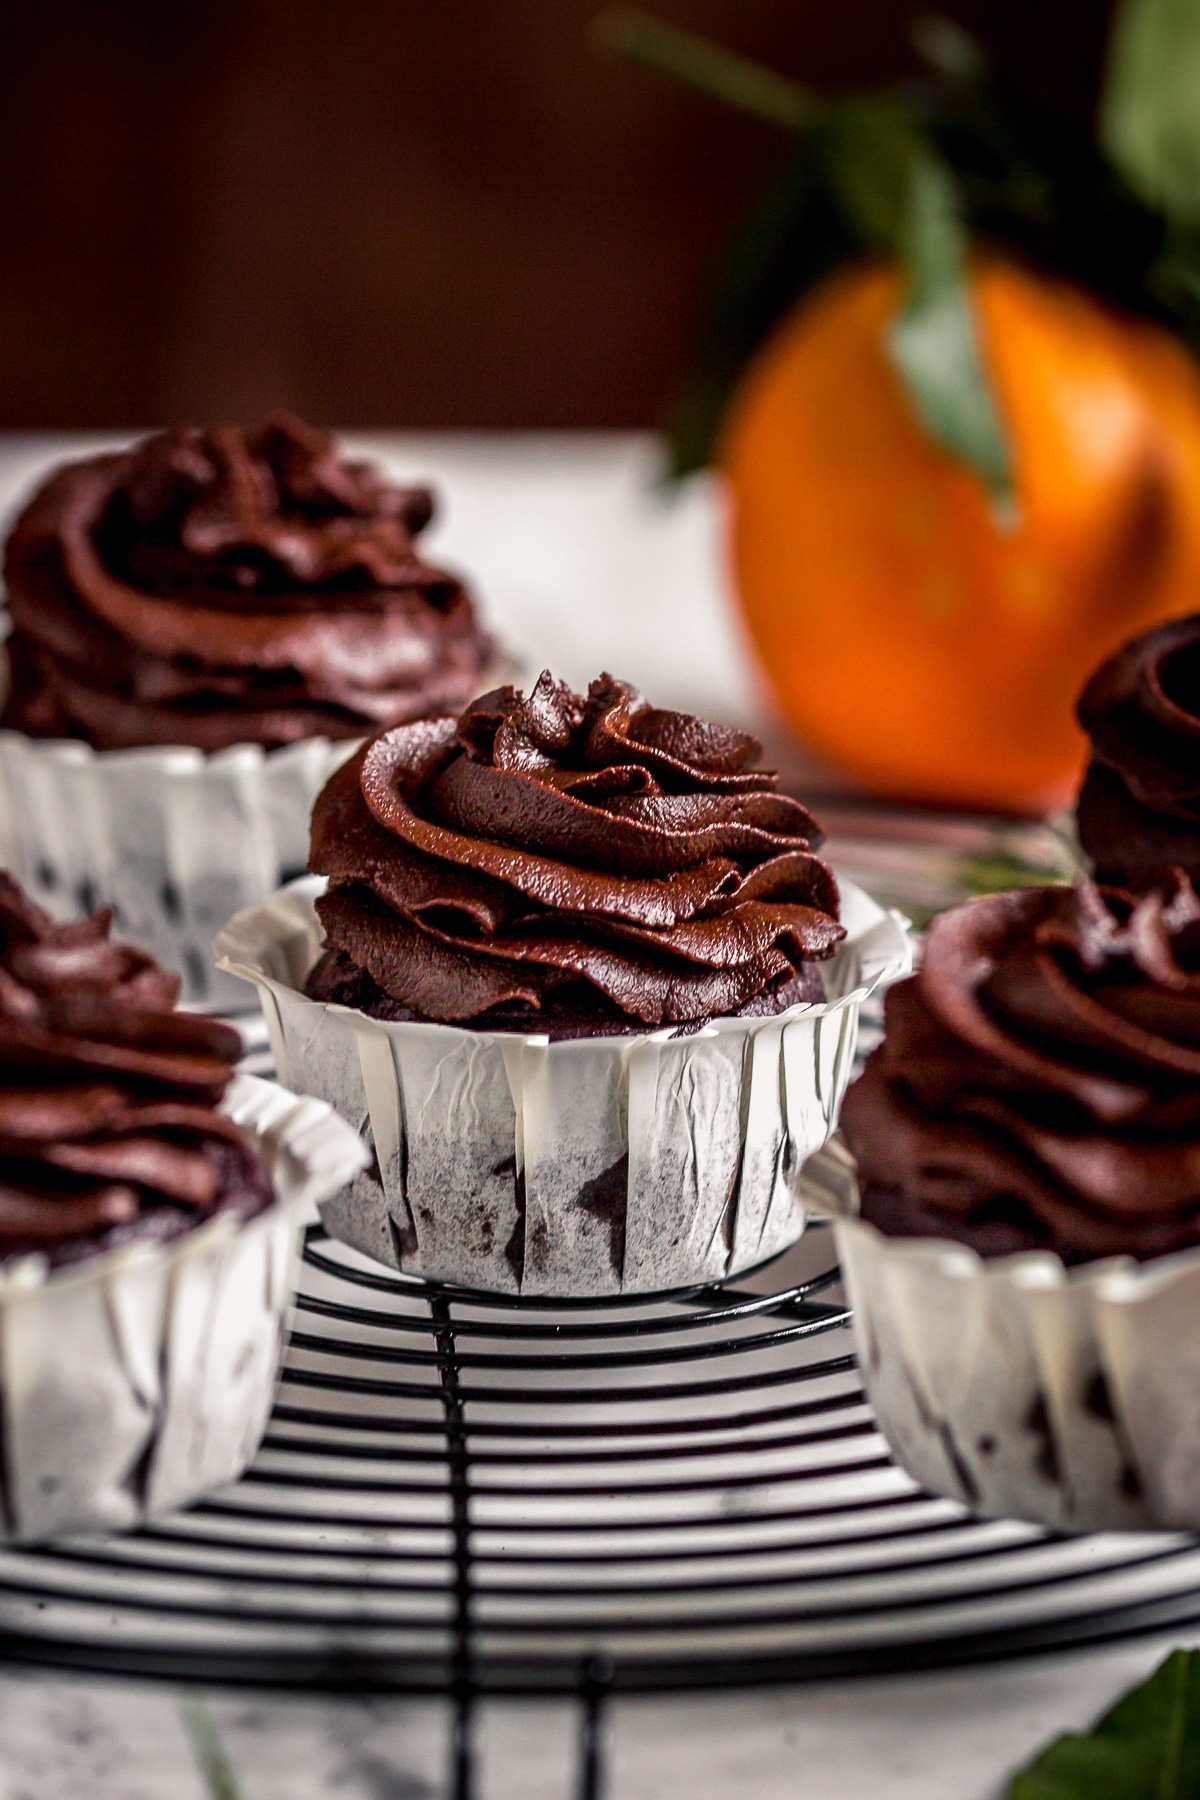 ricetta CUPCAKES VEGAN al CIOCCOLATO ARANCIA e ZUCCA con mousse al cioccolato datteri e zucca senza zucchero healthy vegan CHOCOLATE PUMPKIN CUPCAKES with orange and DATE #CHOCOLATE Frosting